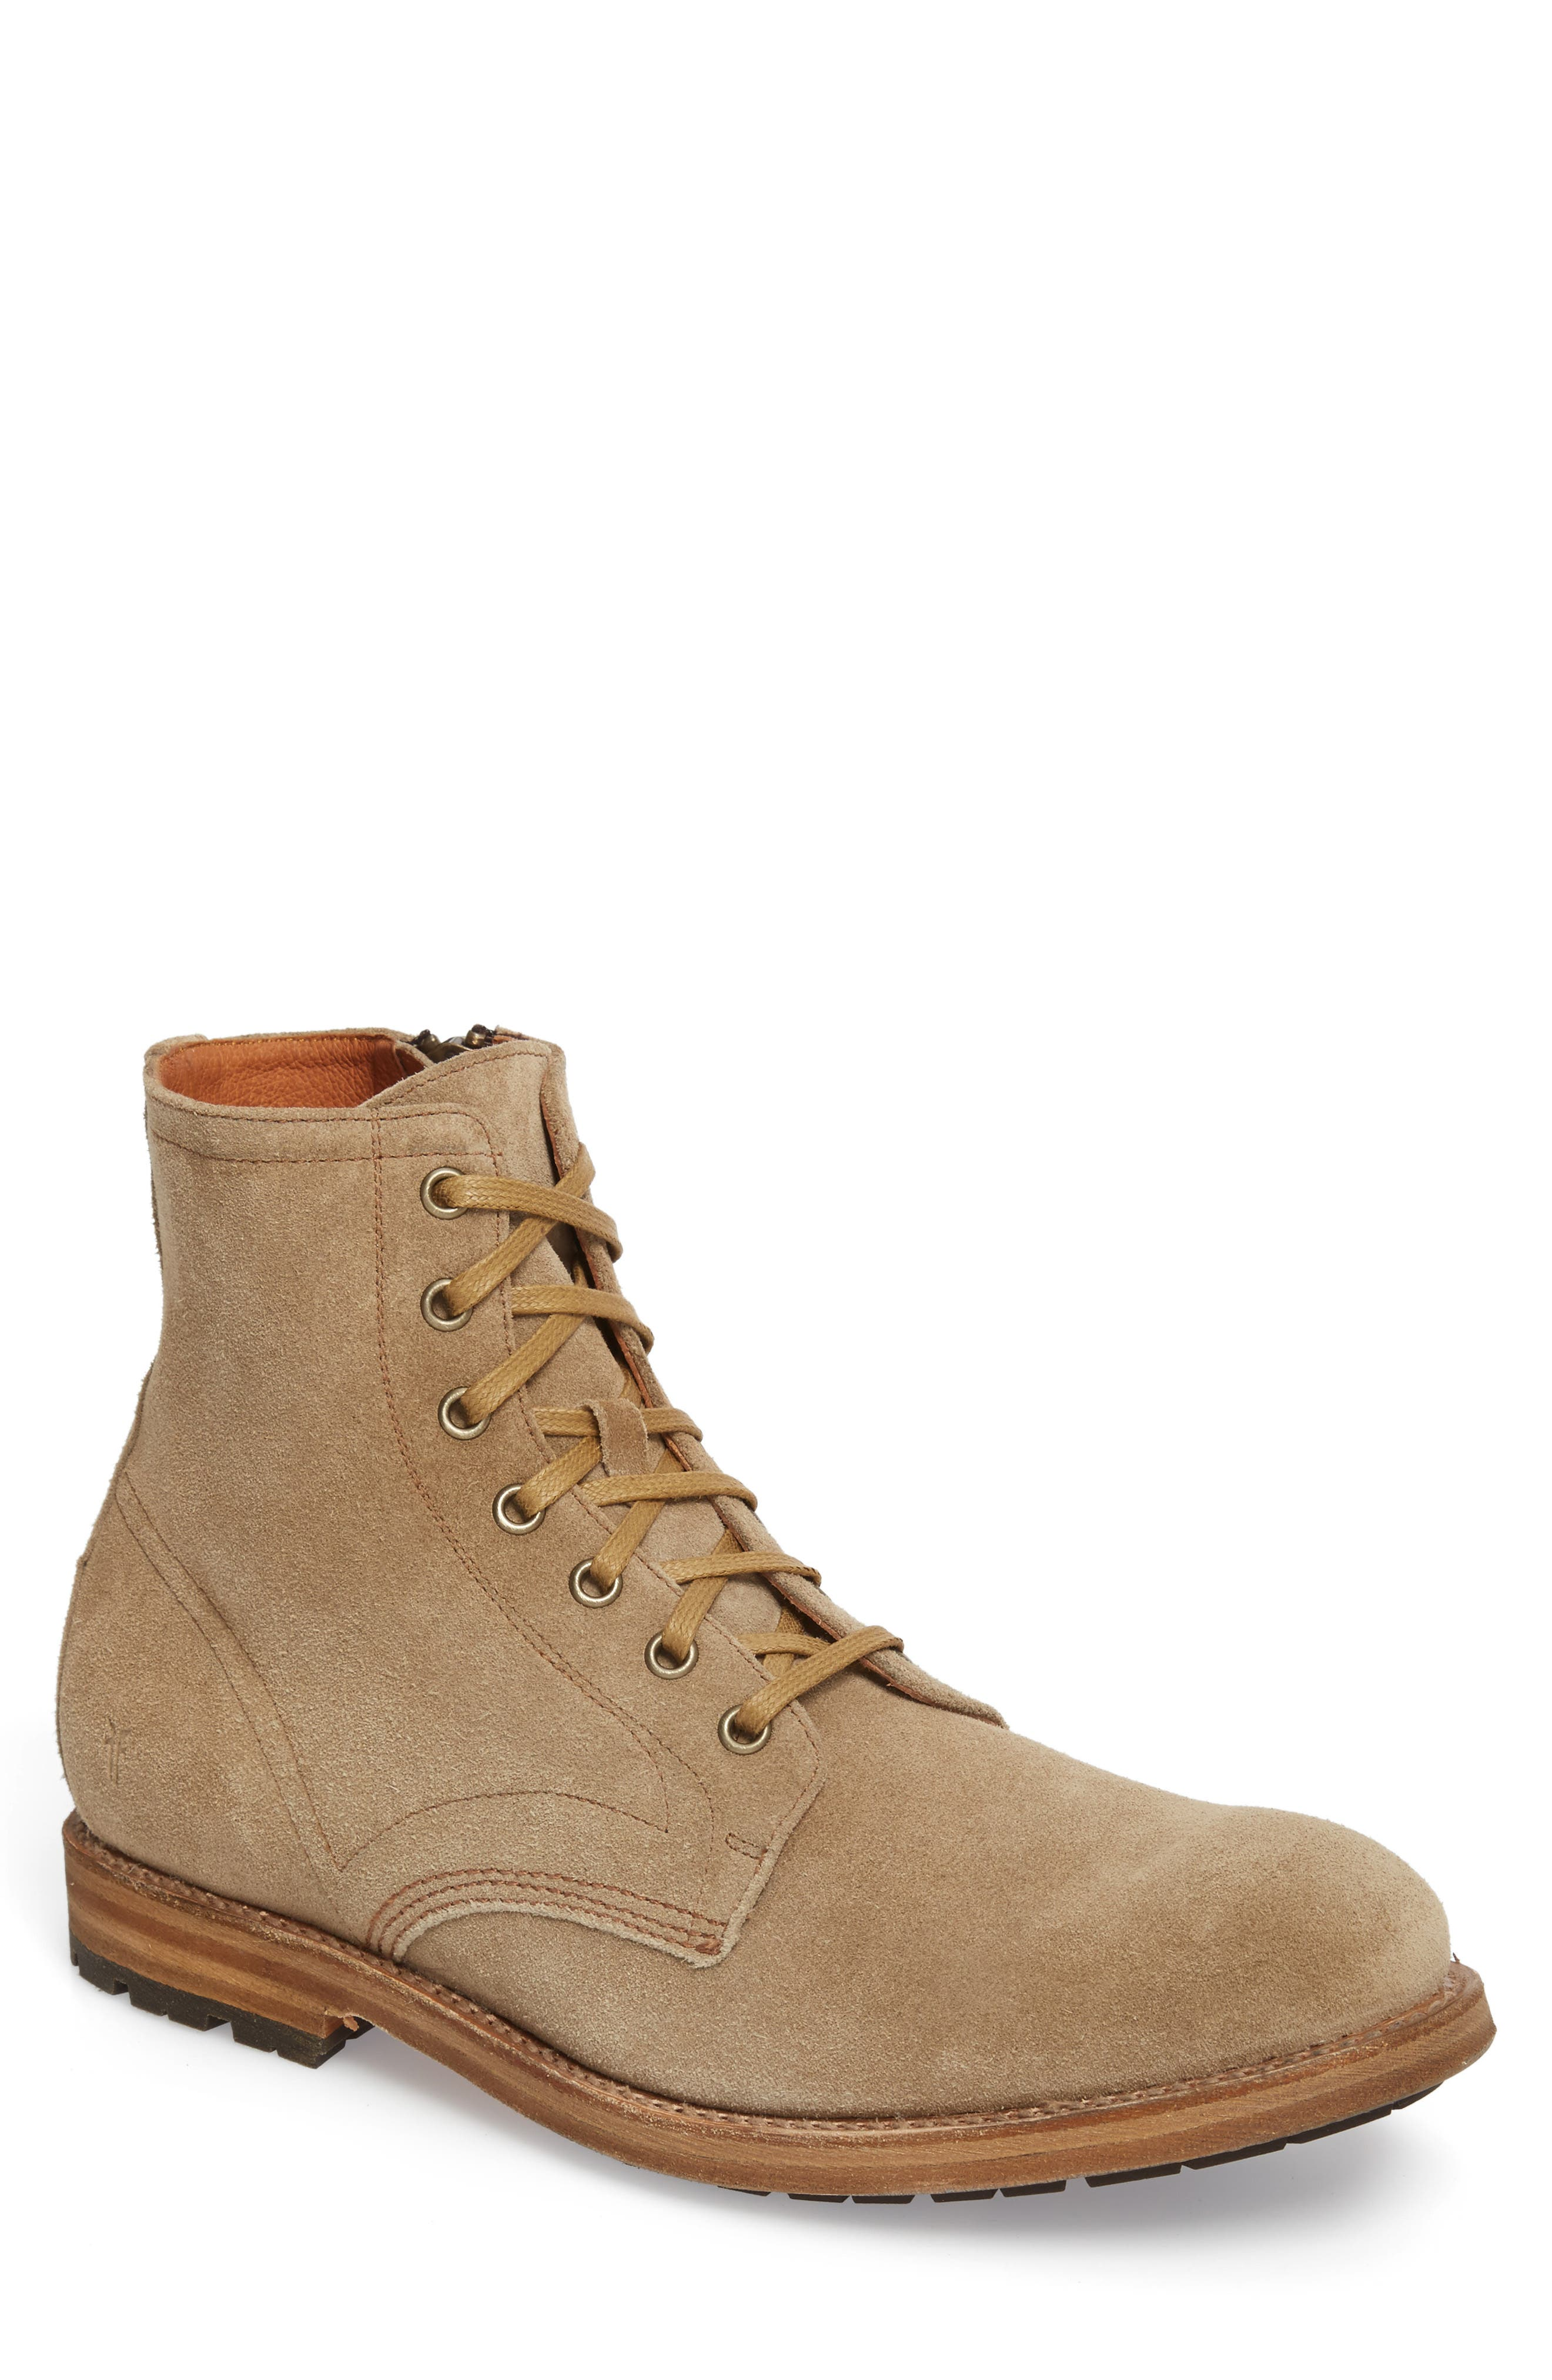 Fry Bowery Side Zip Combat Boot,                             Main thumbnail 1, color,                             250